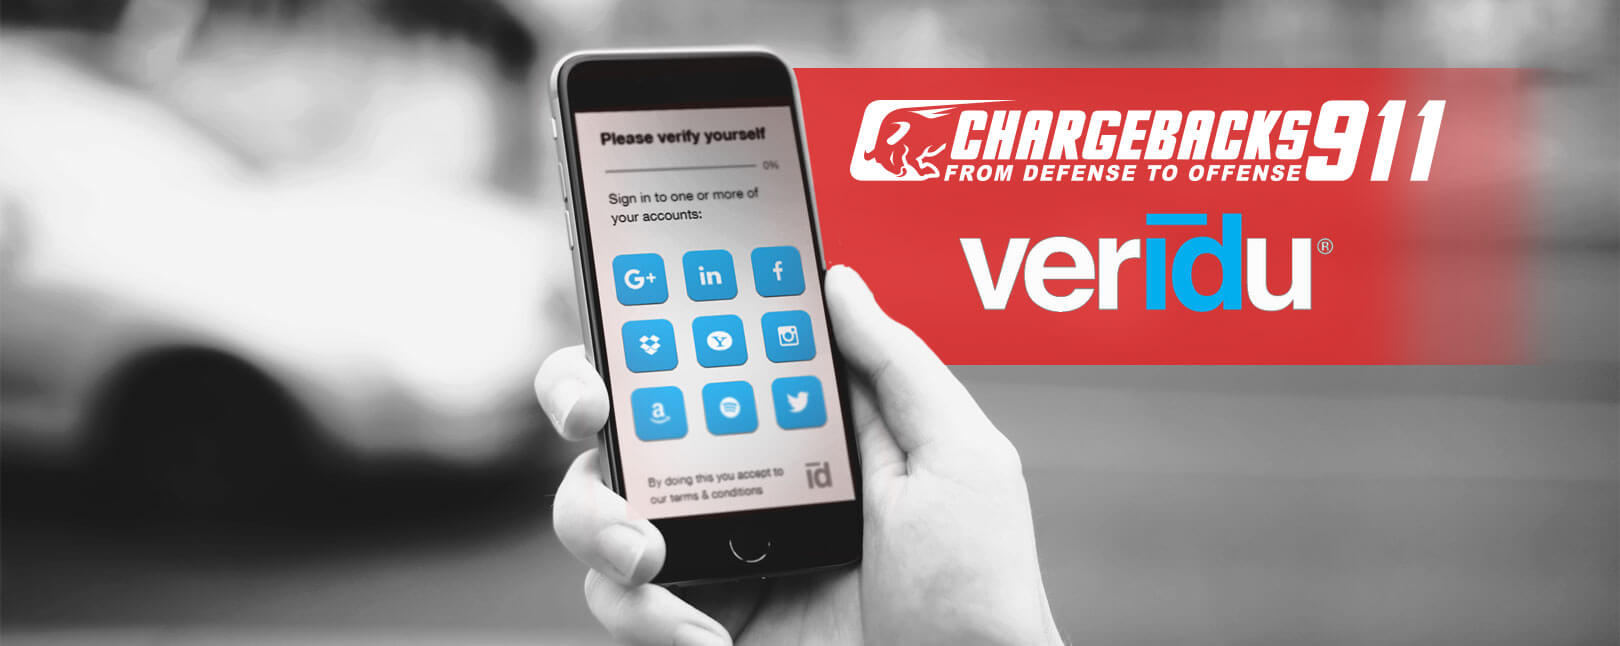 Veridu chargebacks red